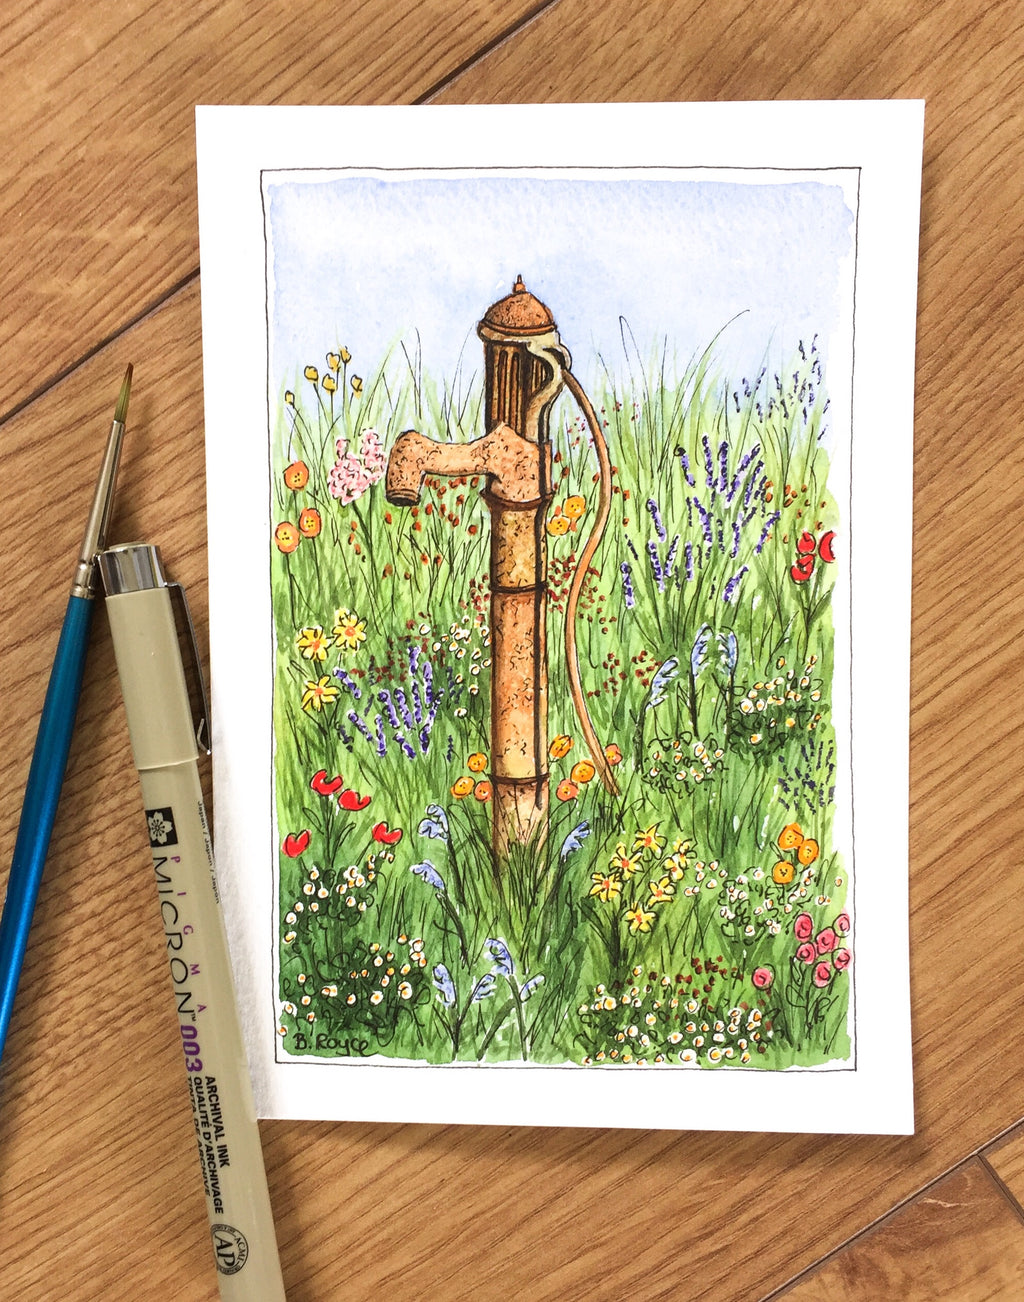 Wildflowers and standpipe